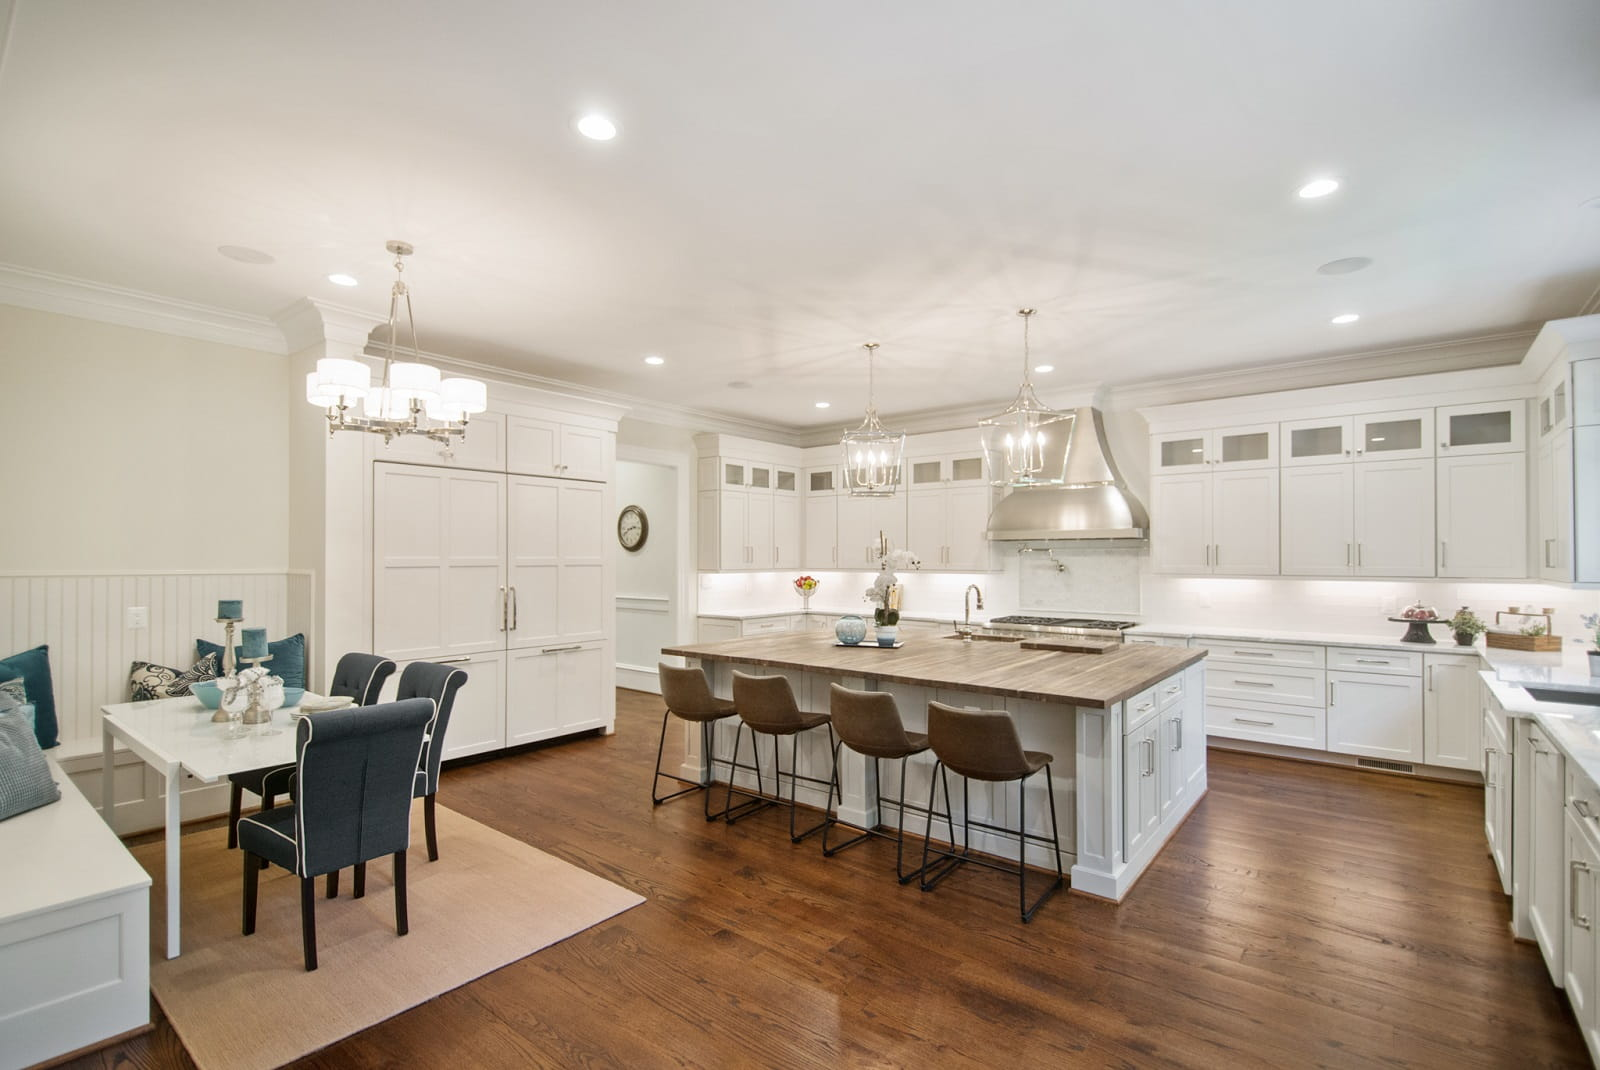 Real Estate Photography in Arlington - Kitchen View